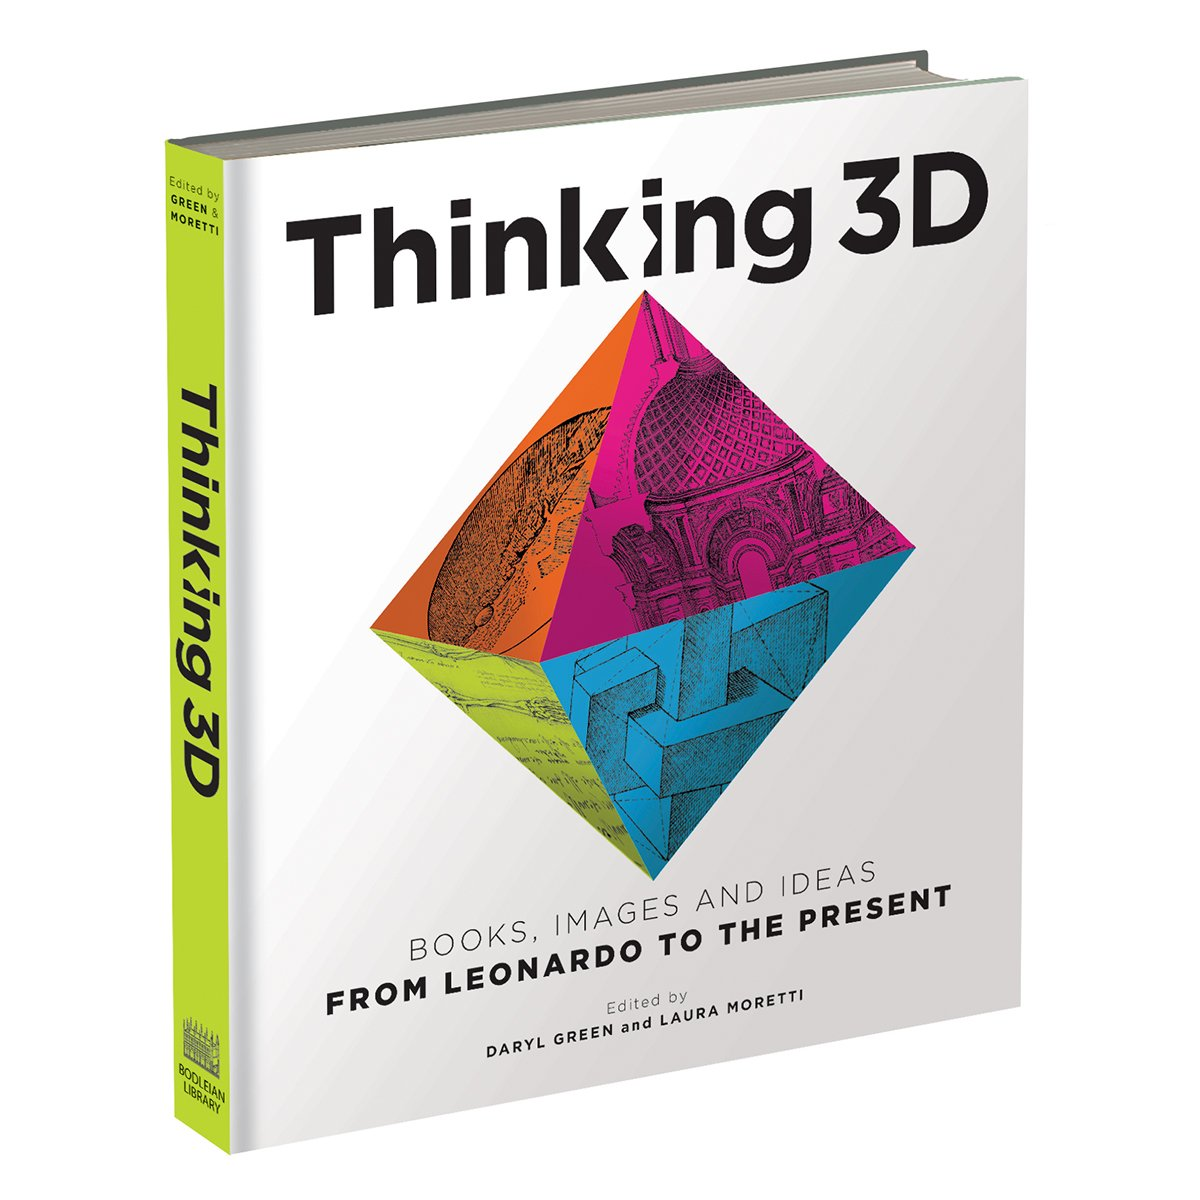 Thinking 3D. Books, Images and Ideas from Leonardo to the Present